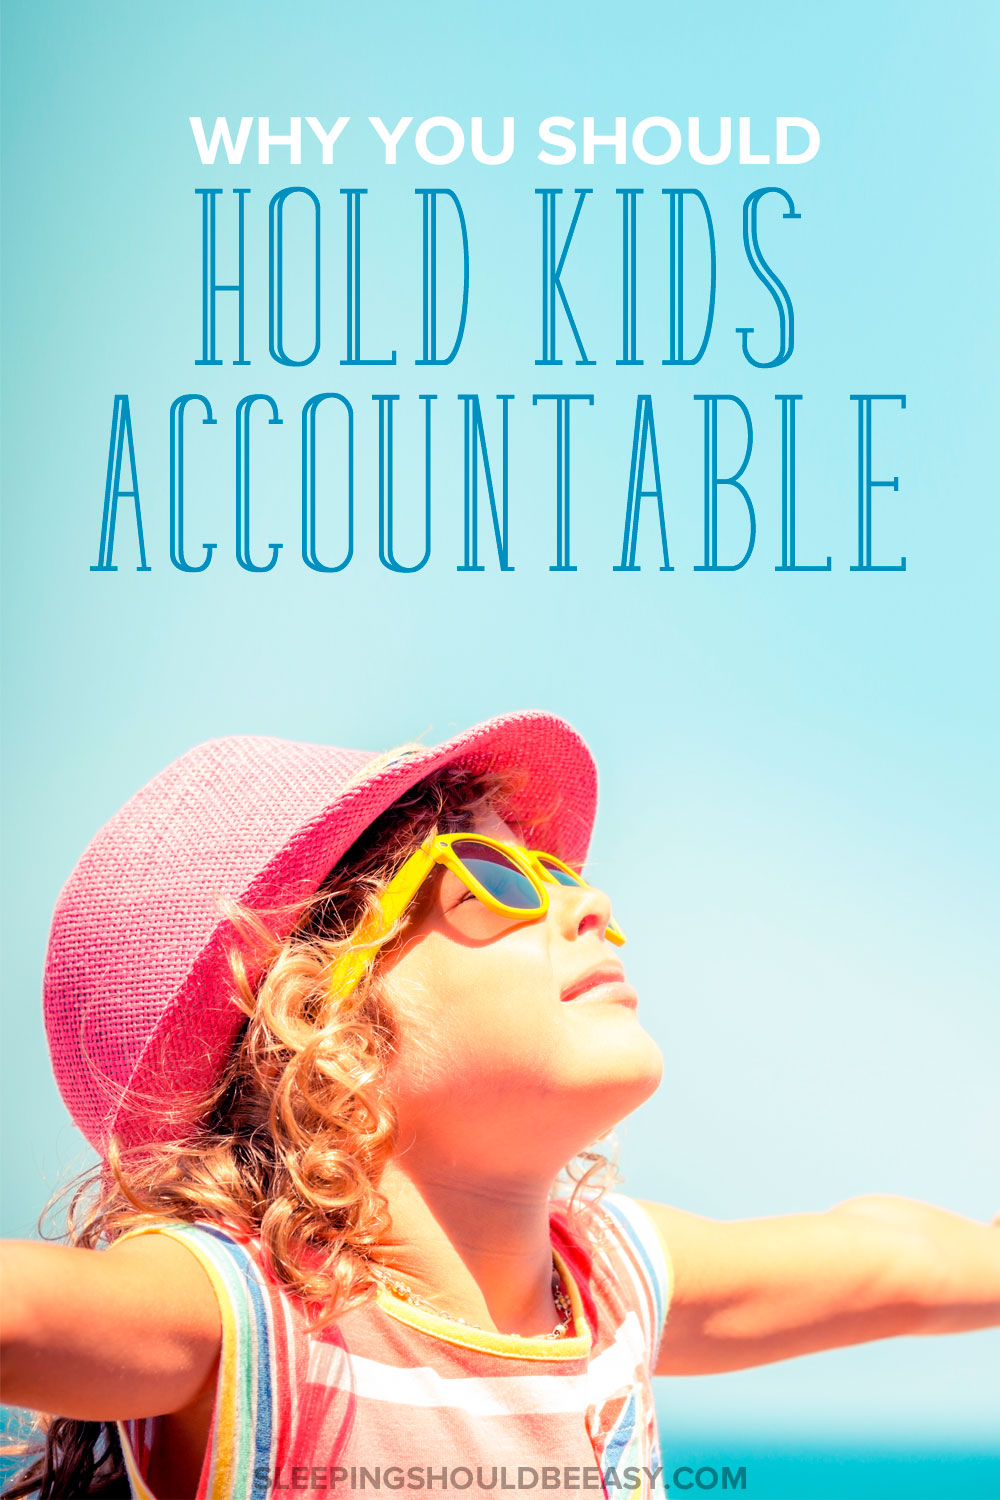 Children make choices that may not have favorable results. Learn why we should instill accountability for kids with their choices.